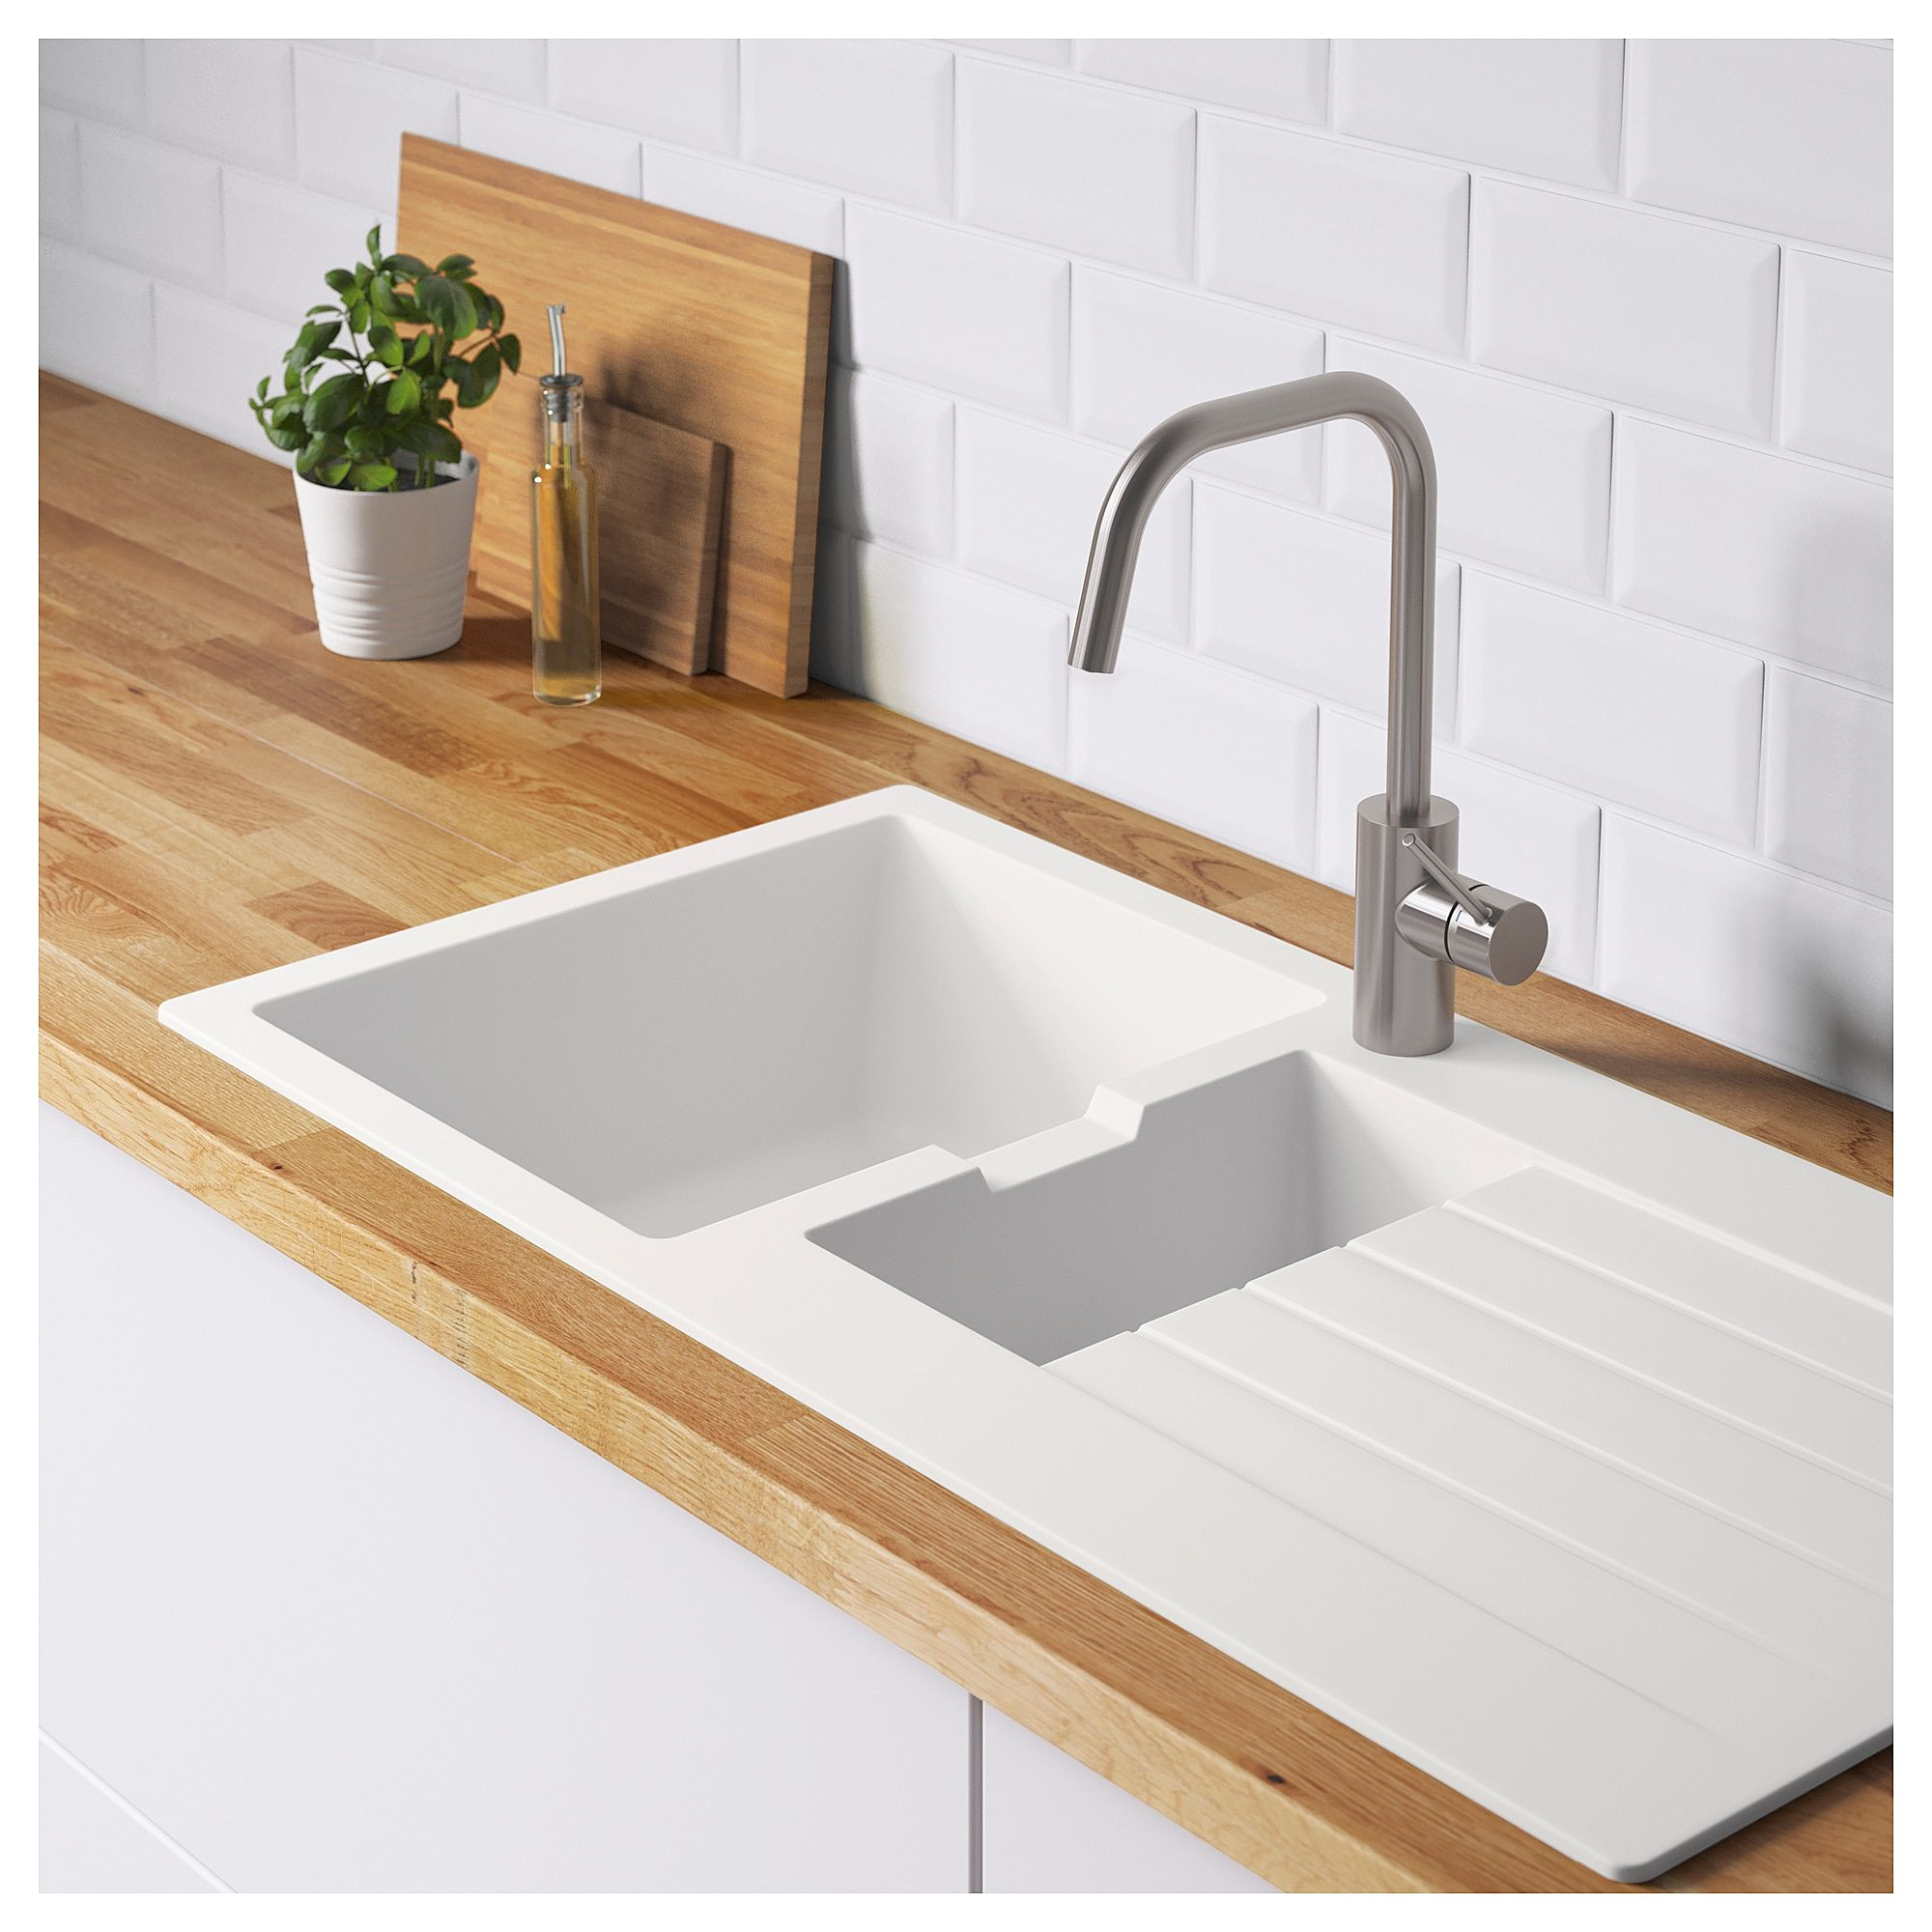 Fresh Home Furnishing Ideas And Affordable Furniture Inset Sink Ceramic Kitchen Sinks Stainless Steel Kitchen Sink